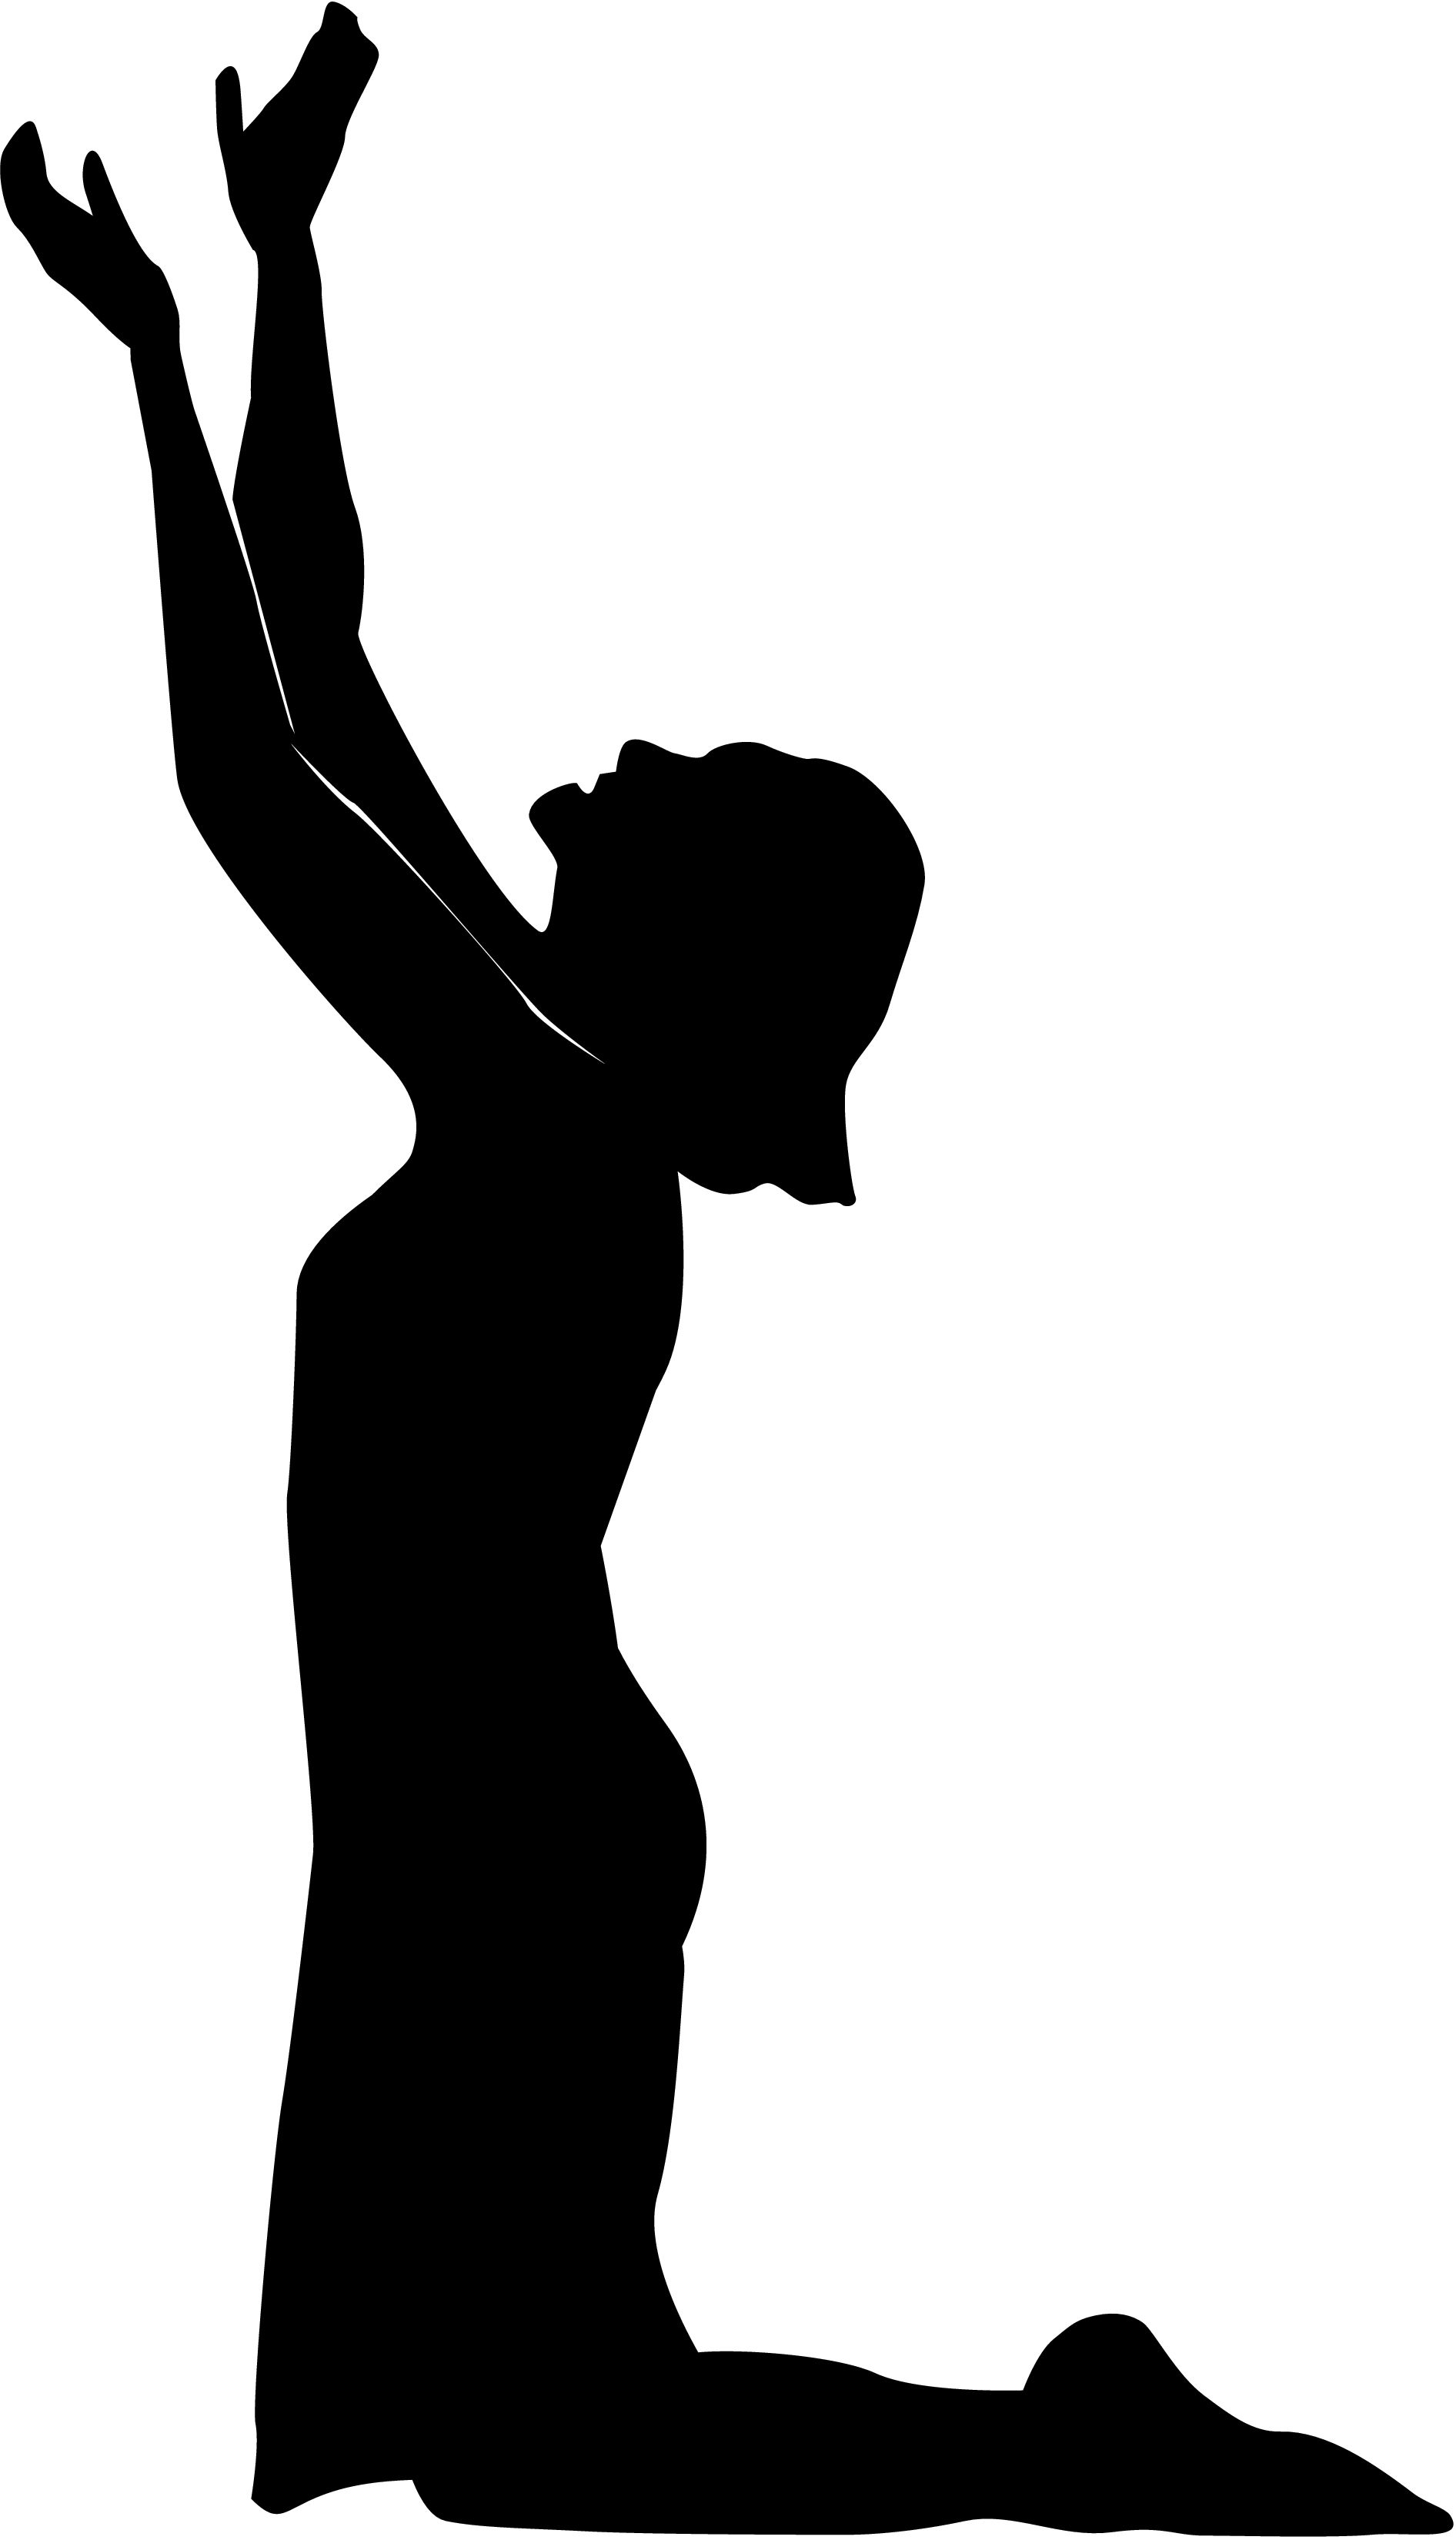 Girl Reaching Up Silhouette